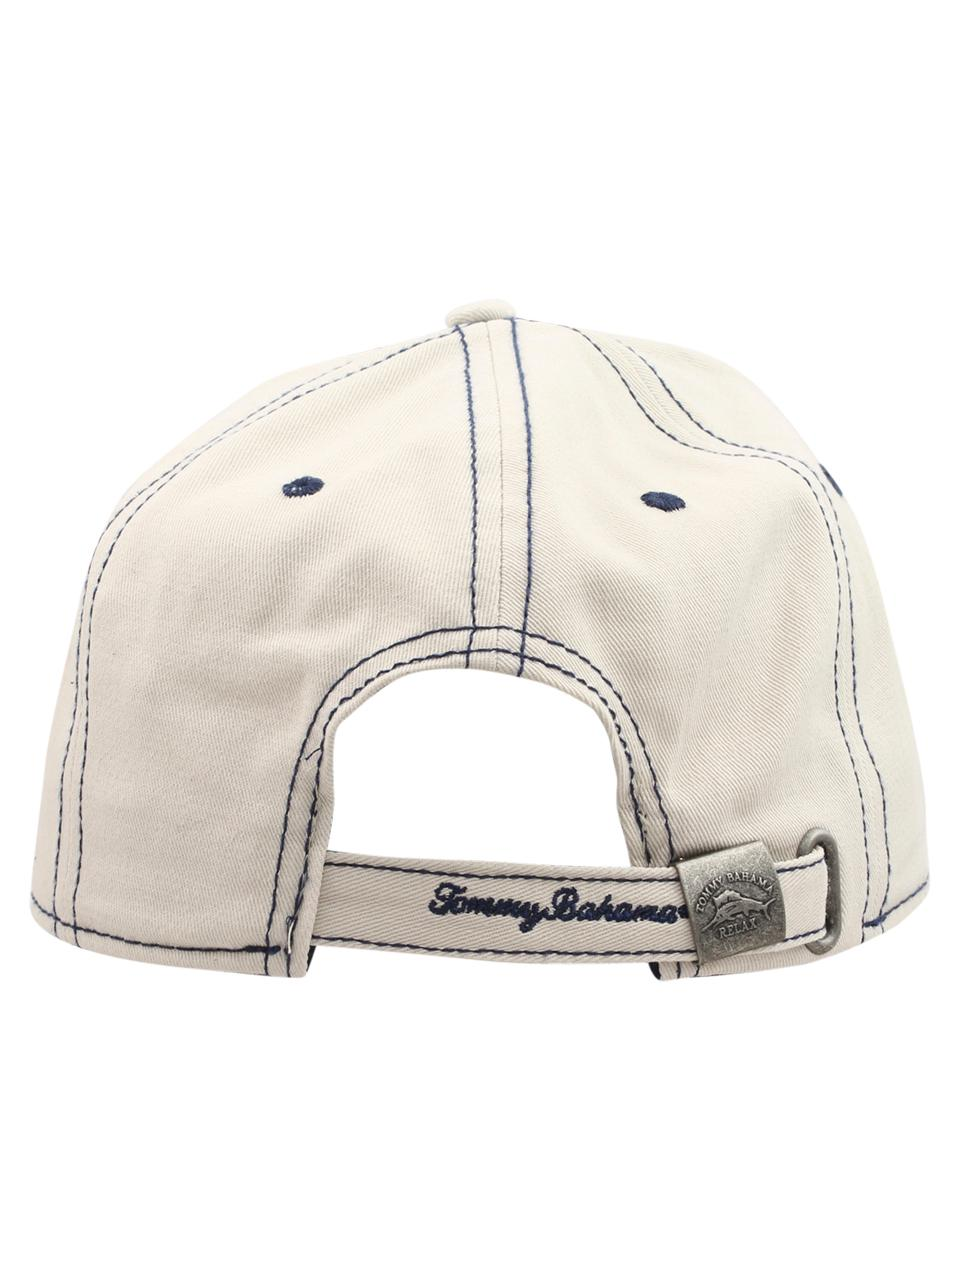 0f70f299e4098 Tommy Bahama Men s Strapback Baseball Cap Hat by Tommy Bahama. Touch to zoom